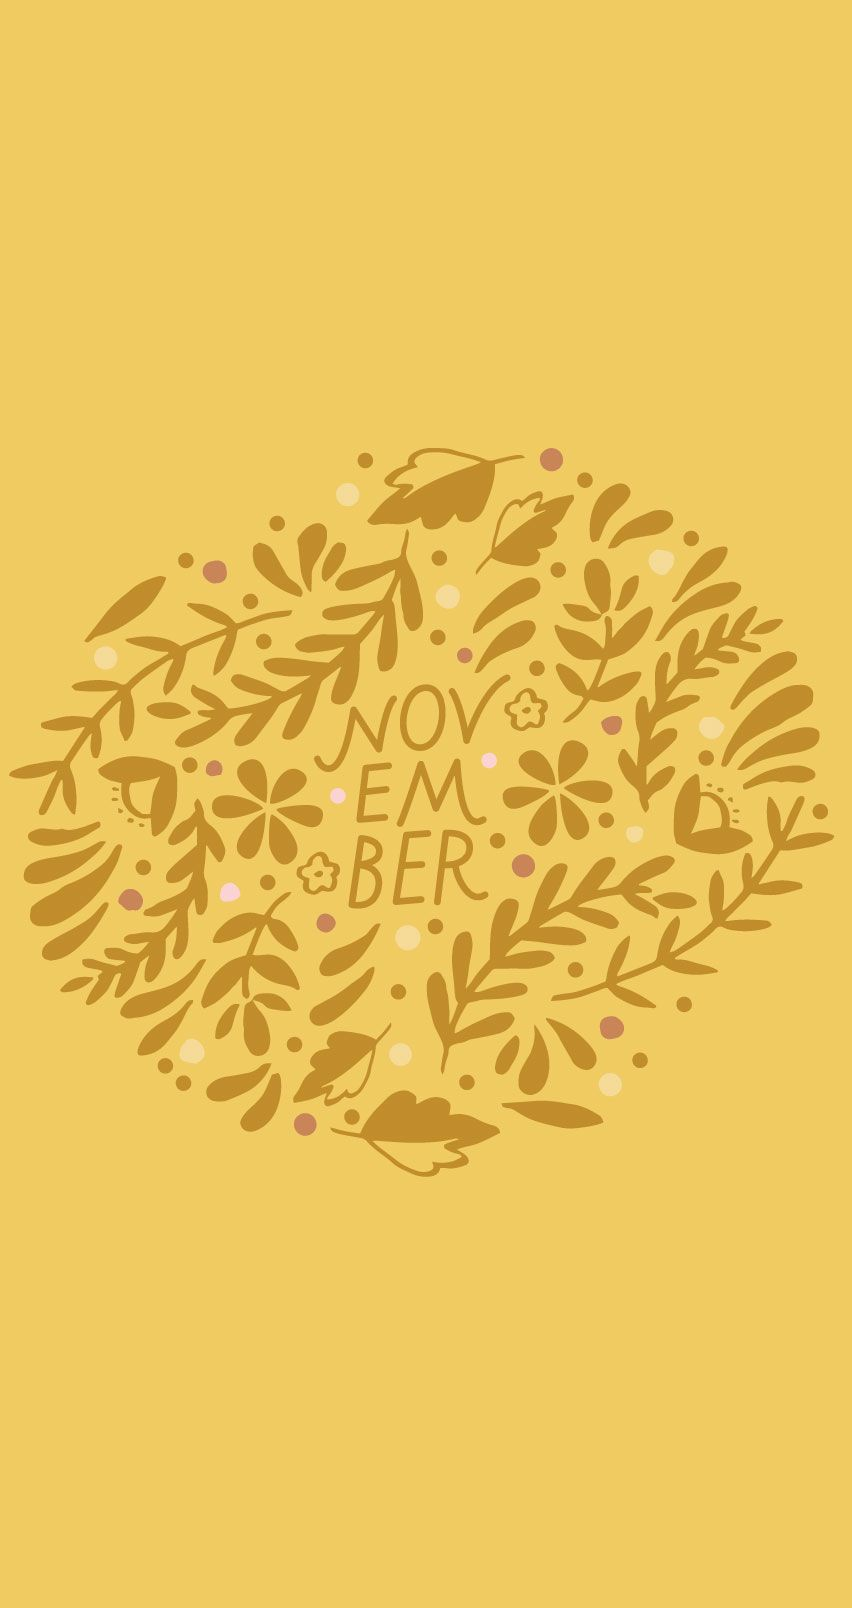 November Autumn Lettering Floral Mustard Yellow Floral